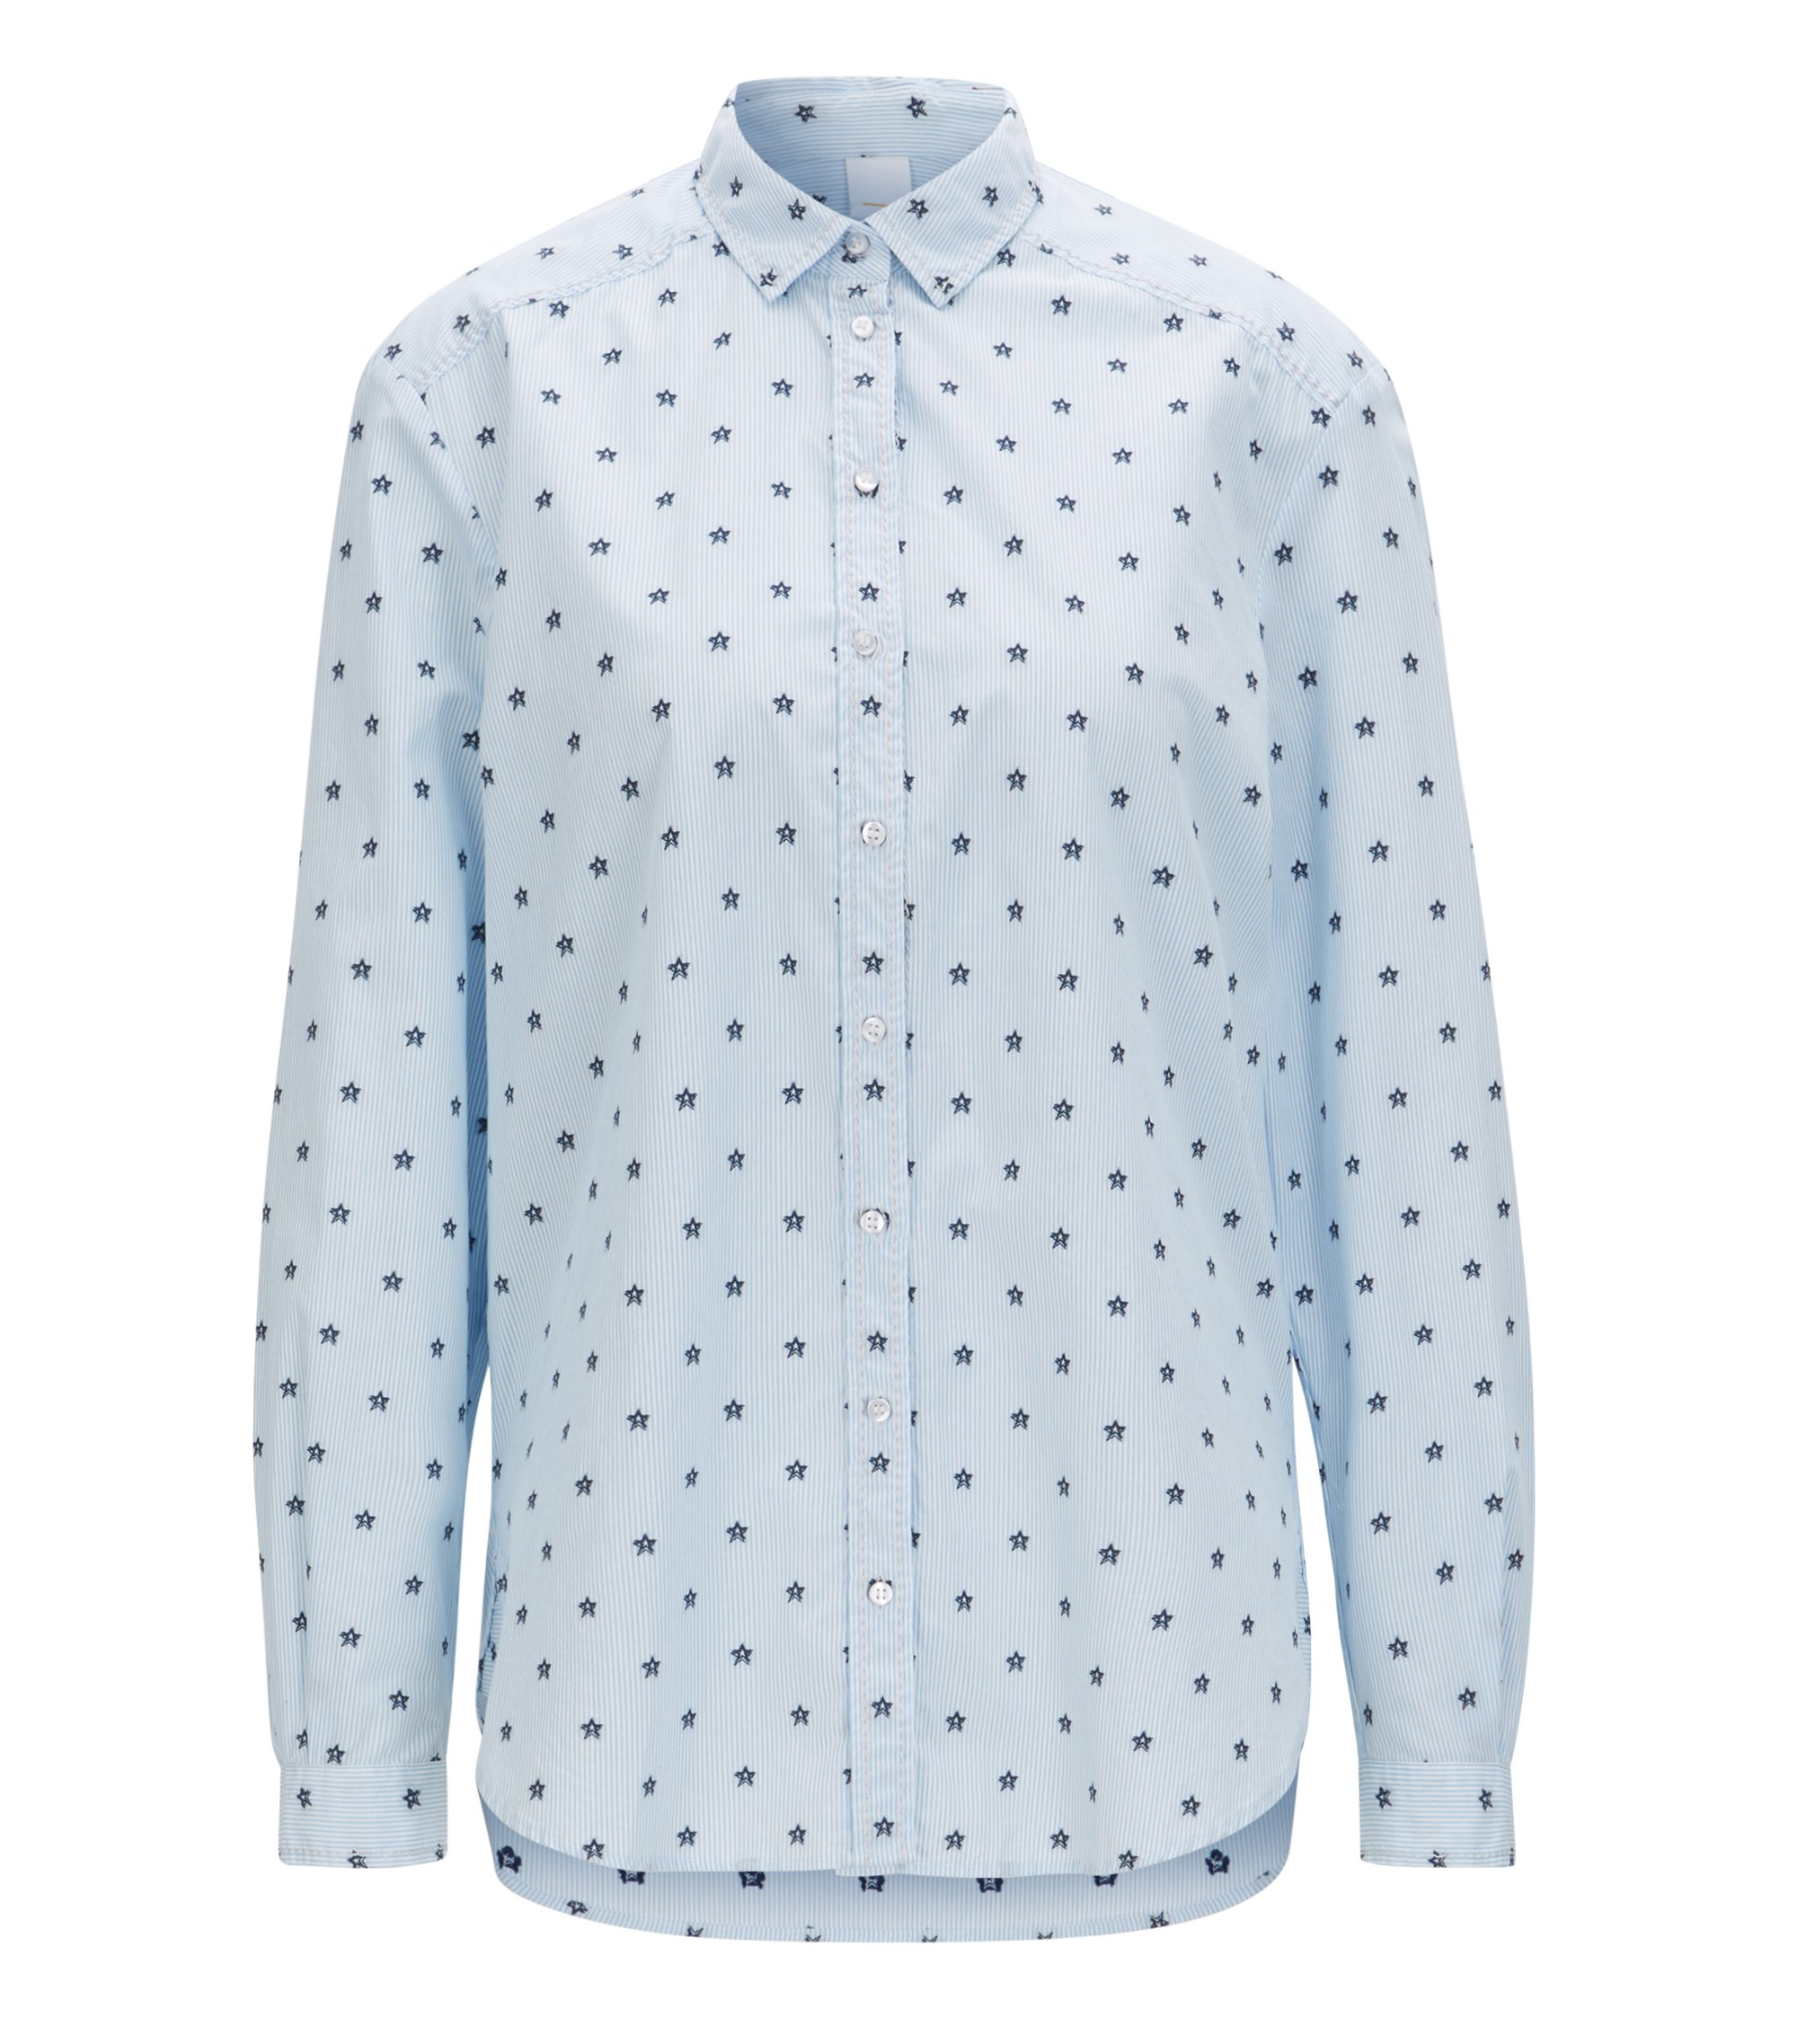 Relaxed-fit blouse in patterned cotton jacquard, Light Blue